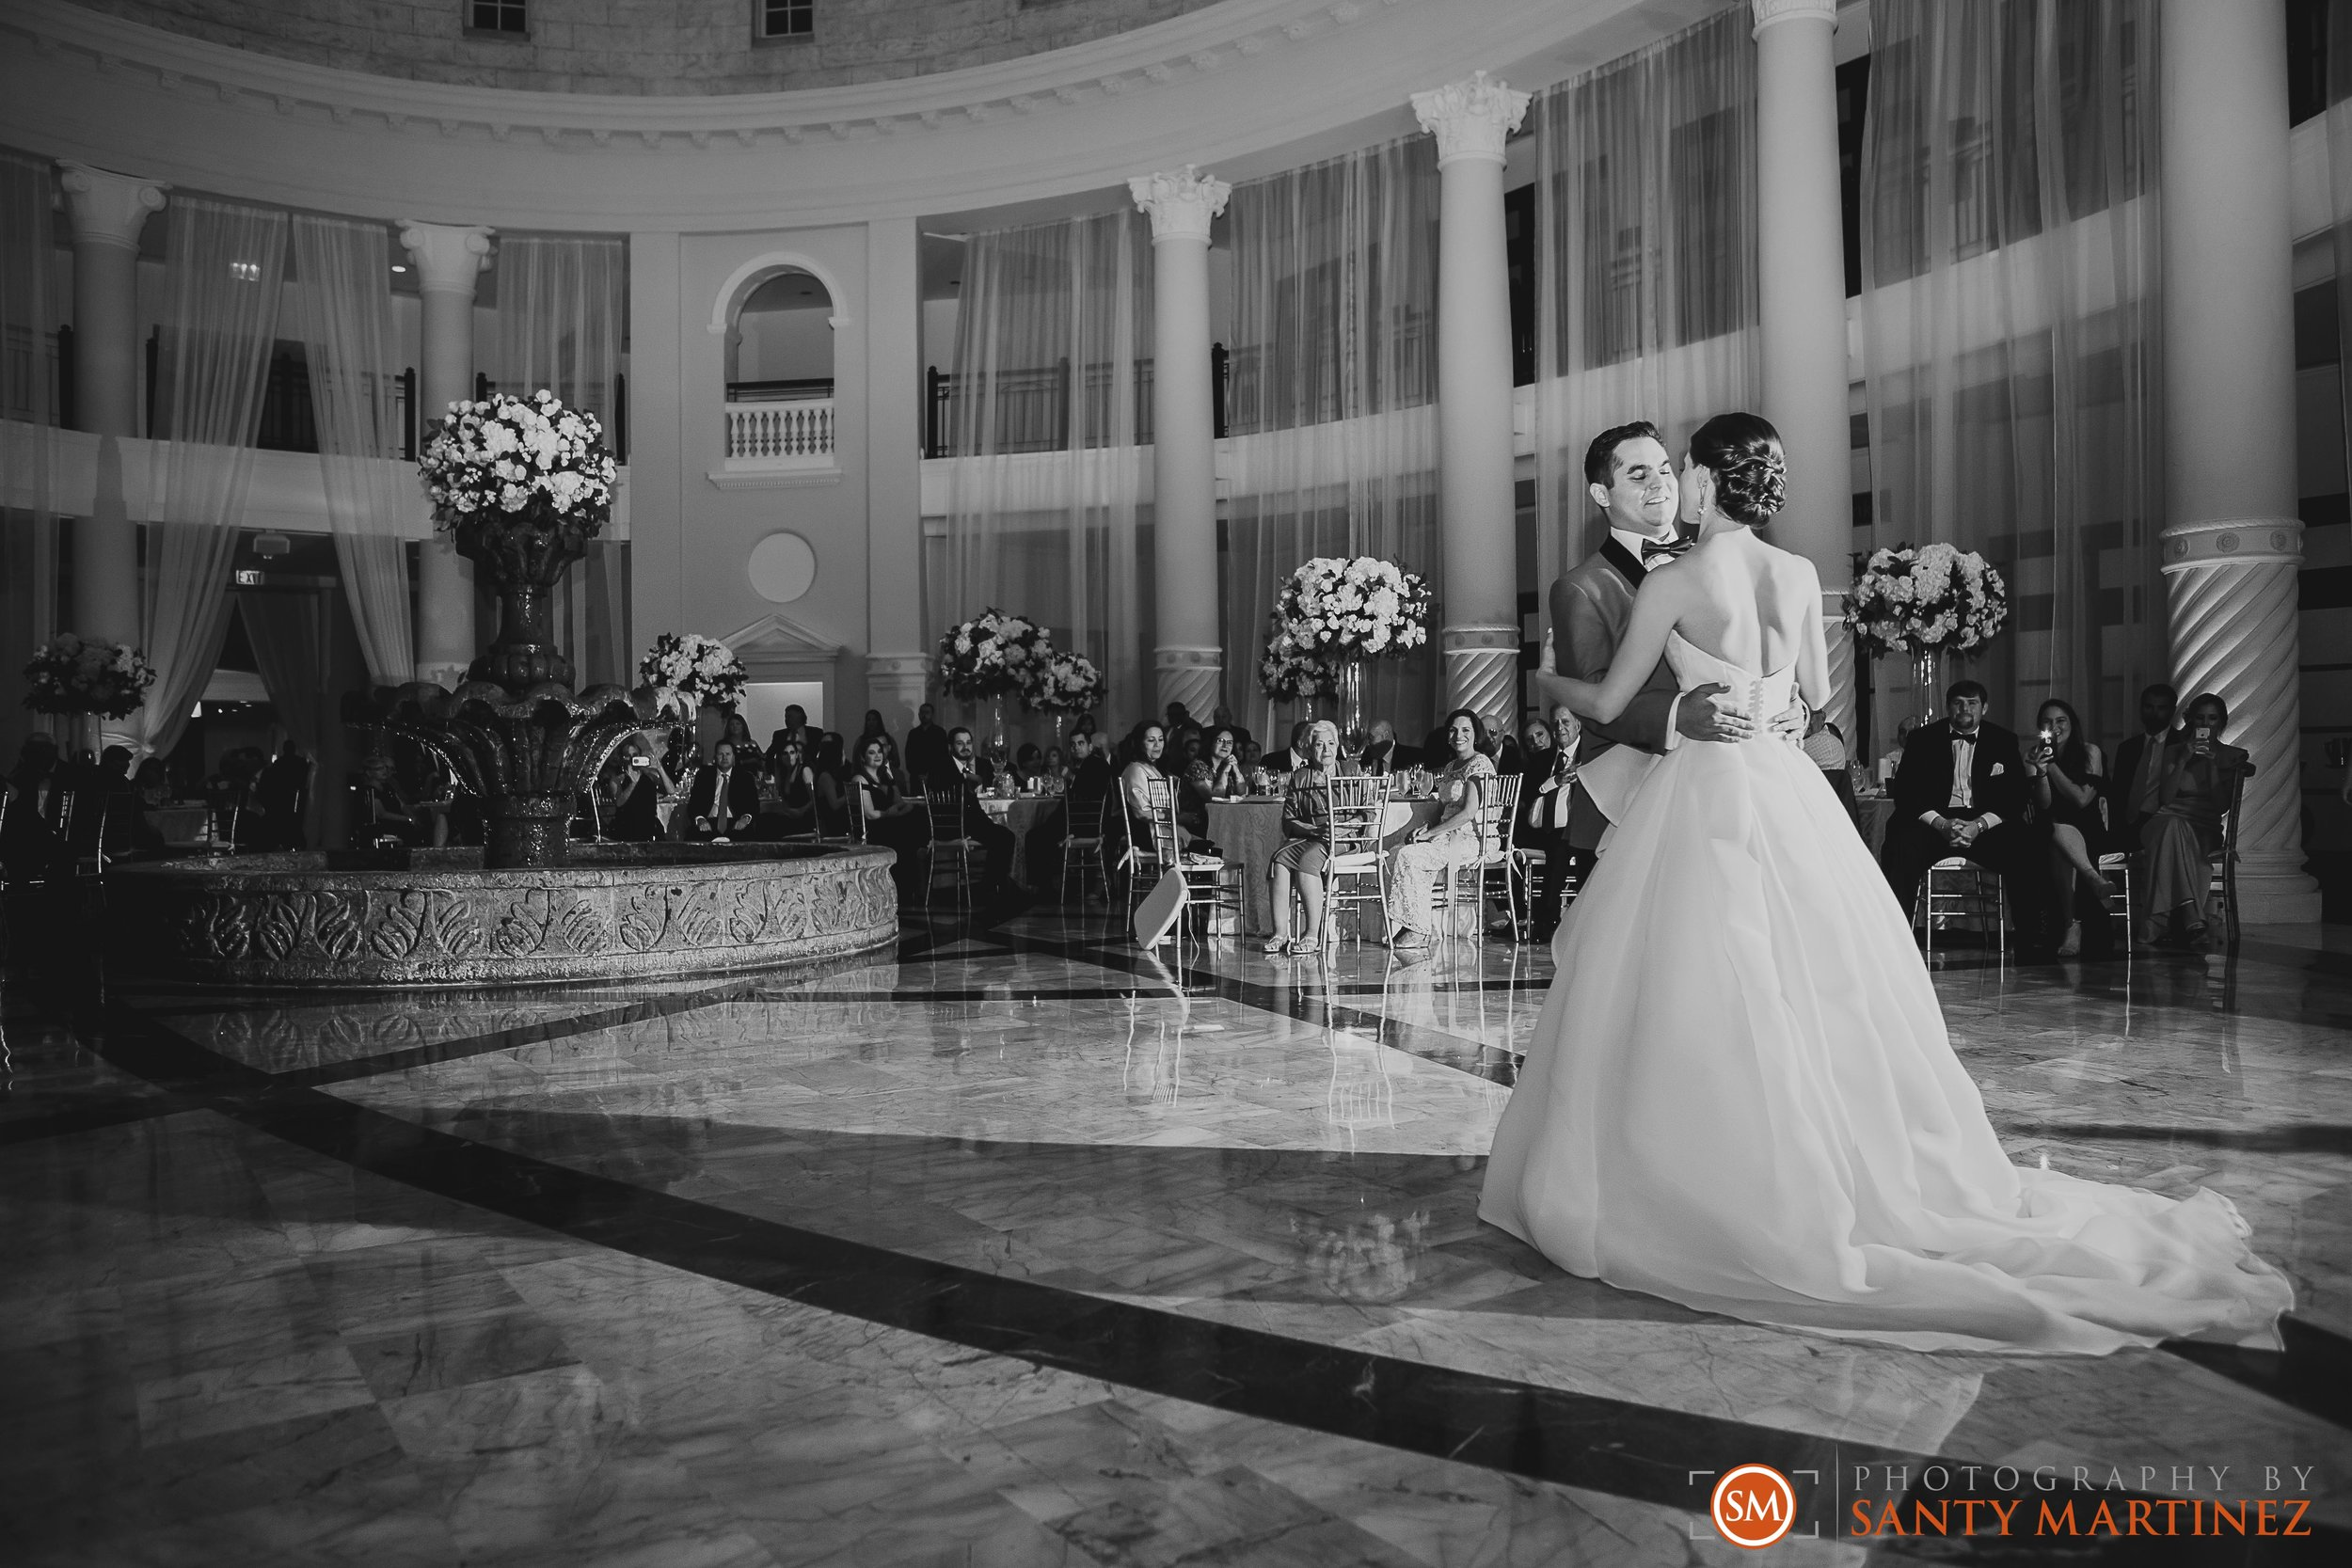 Wedding - Hotel Colonnade Coral Gables - Santy Martinez Photography-22.jpg